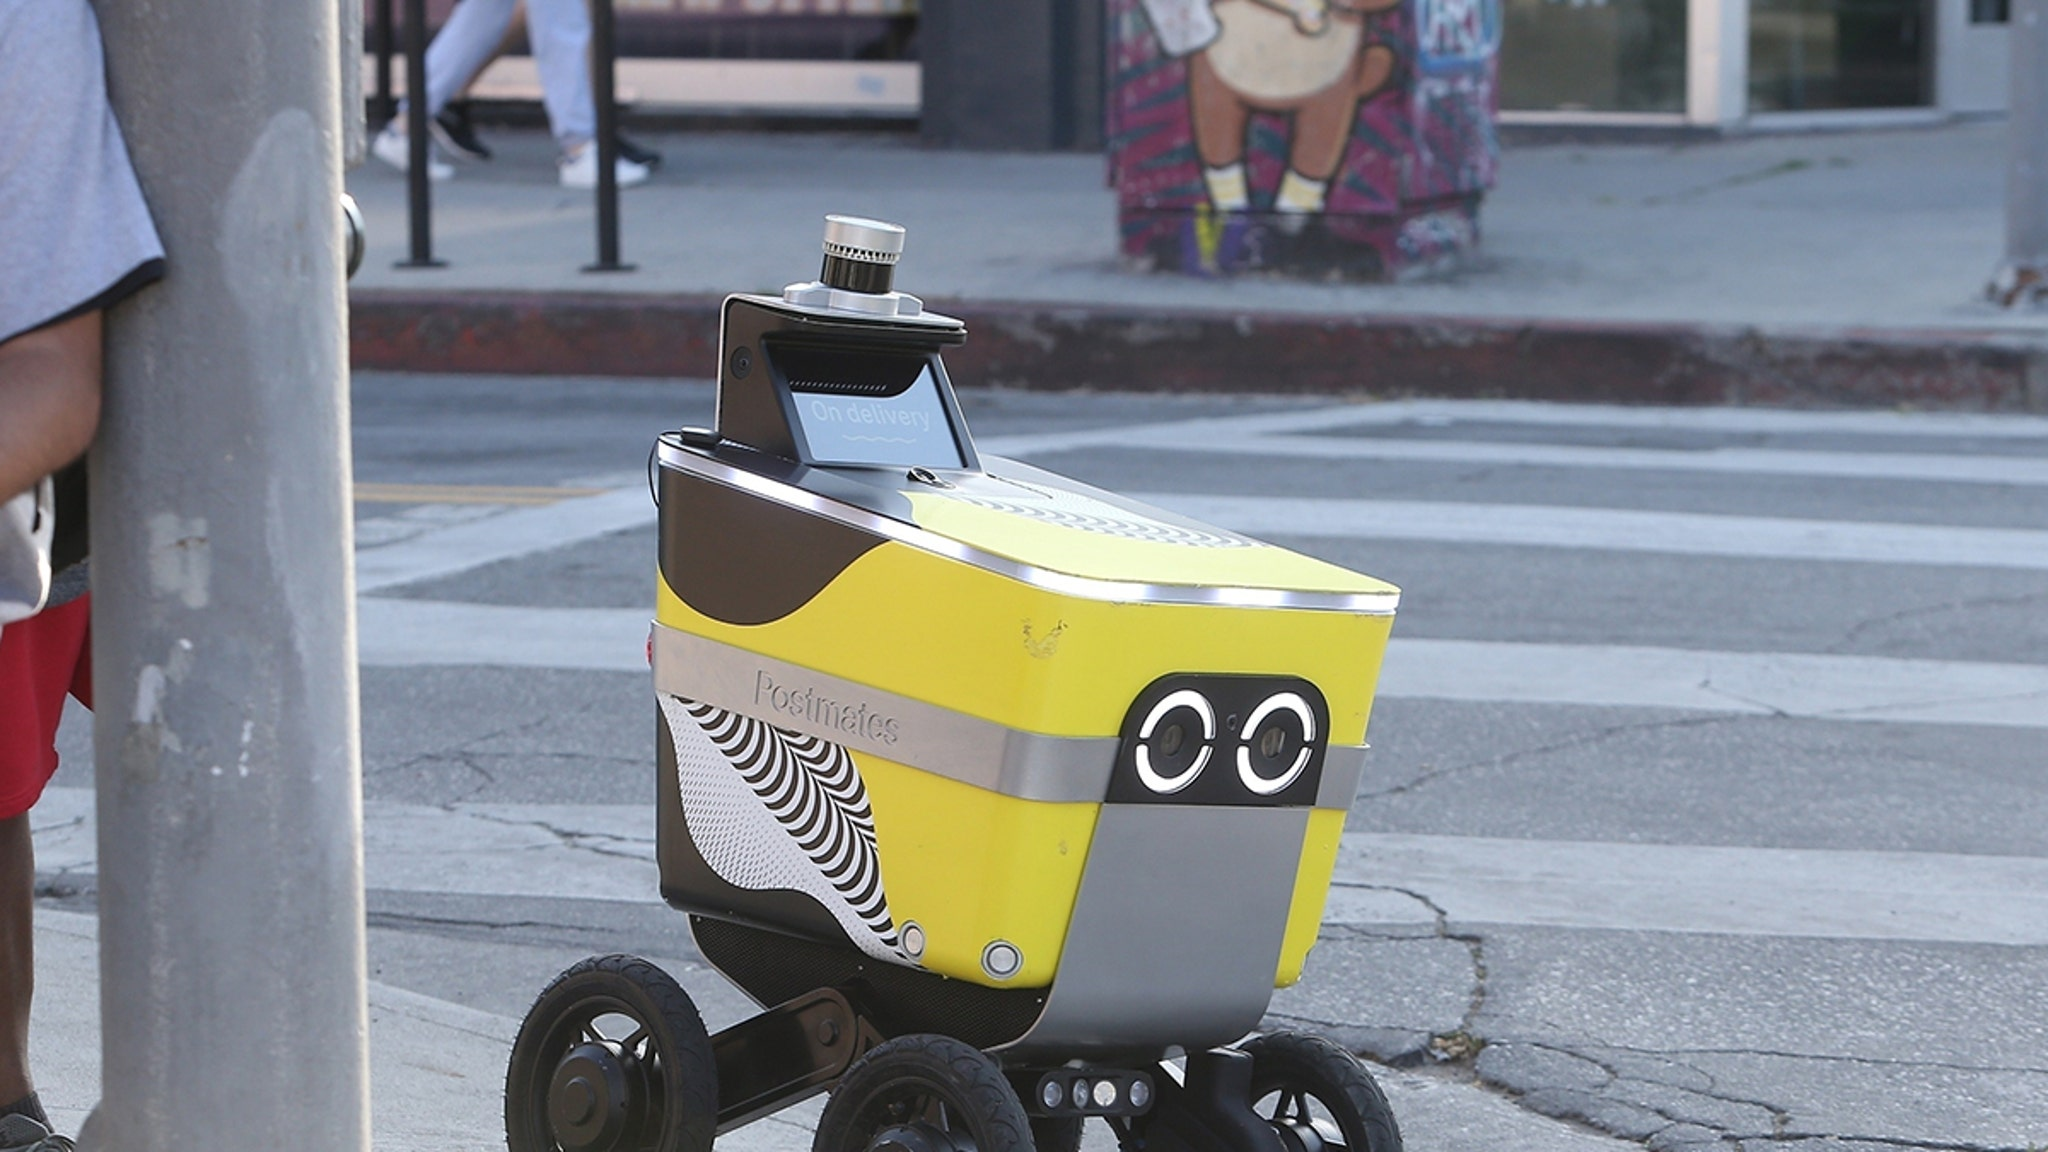 Postmates Delivery Robot 'Serve' Gets New Life in Wake of Coronavirus Pandemic